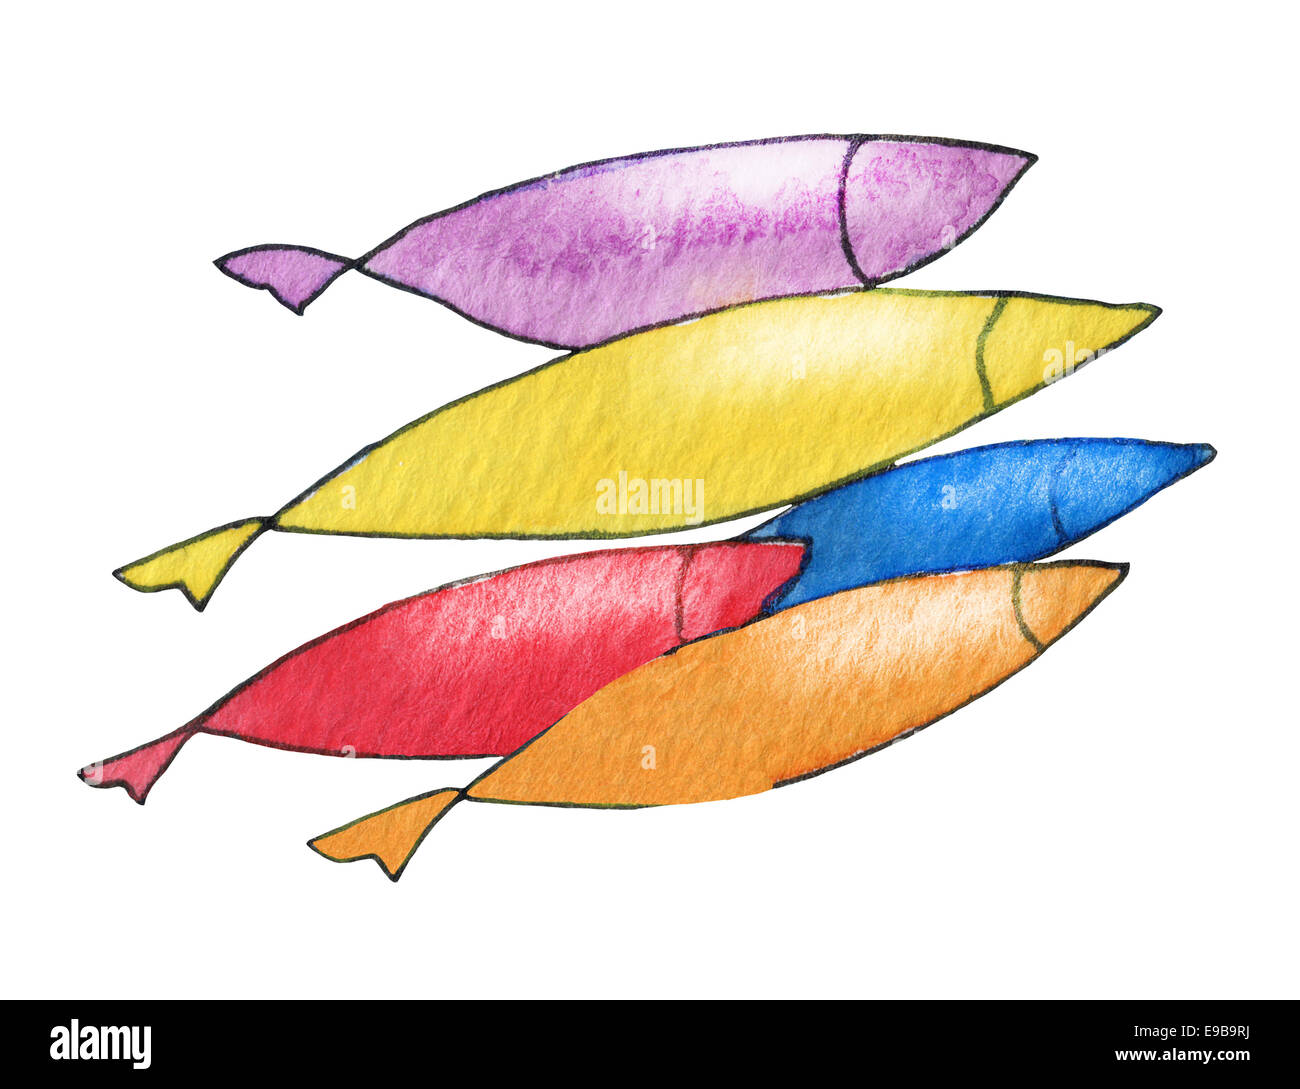 Fish on white. Abstract original watercolor background texture. Stock Photo